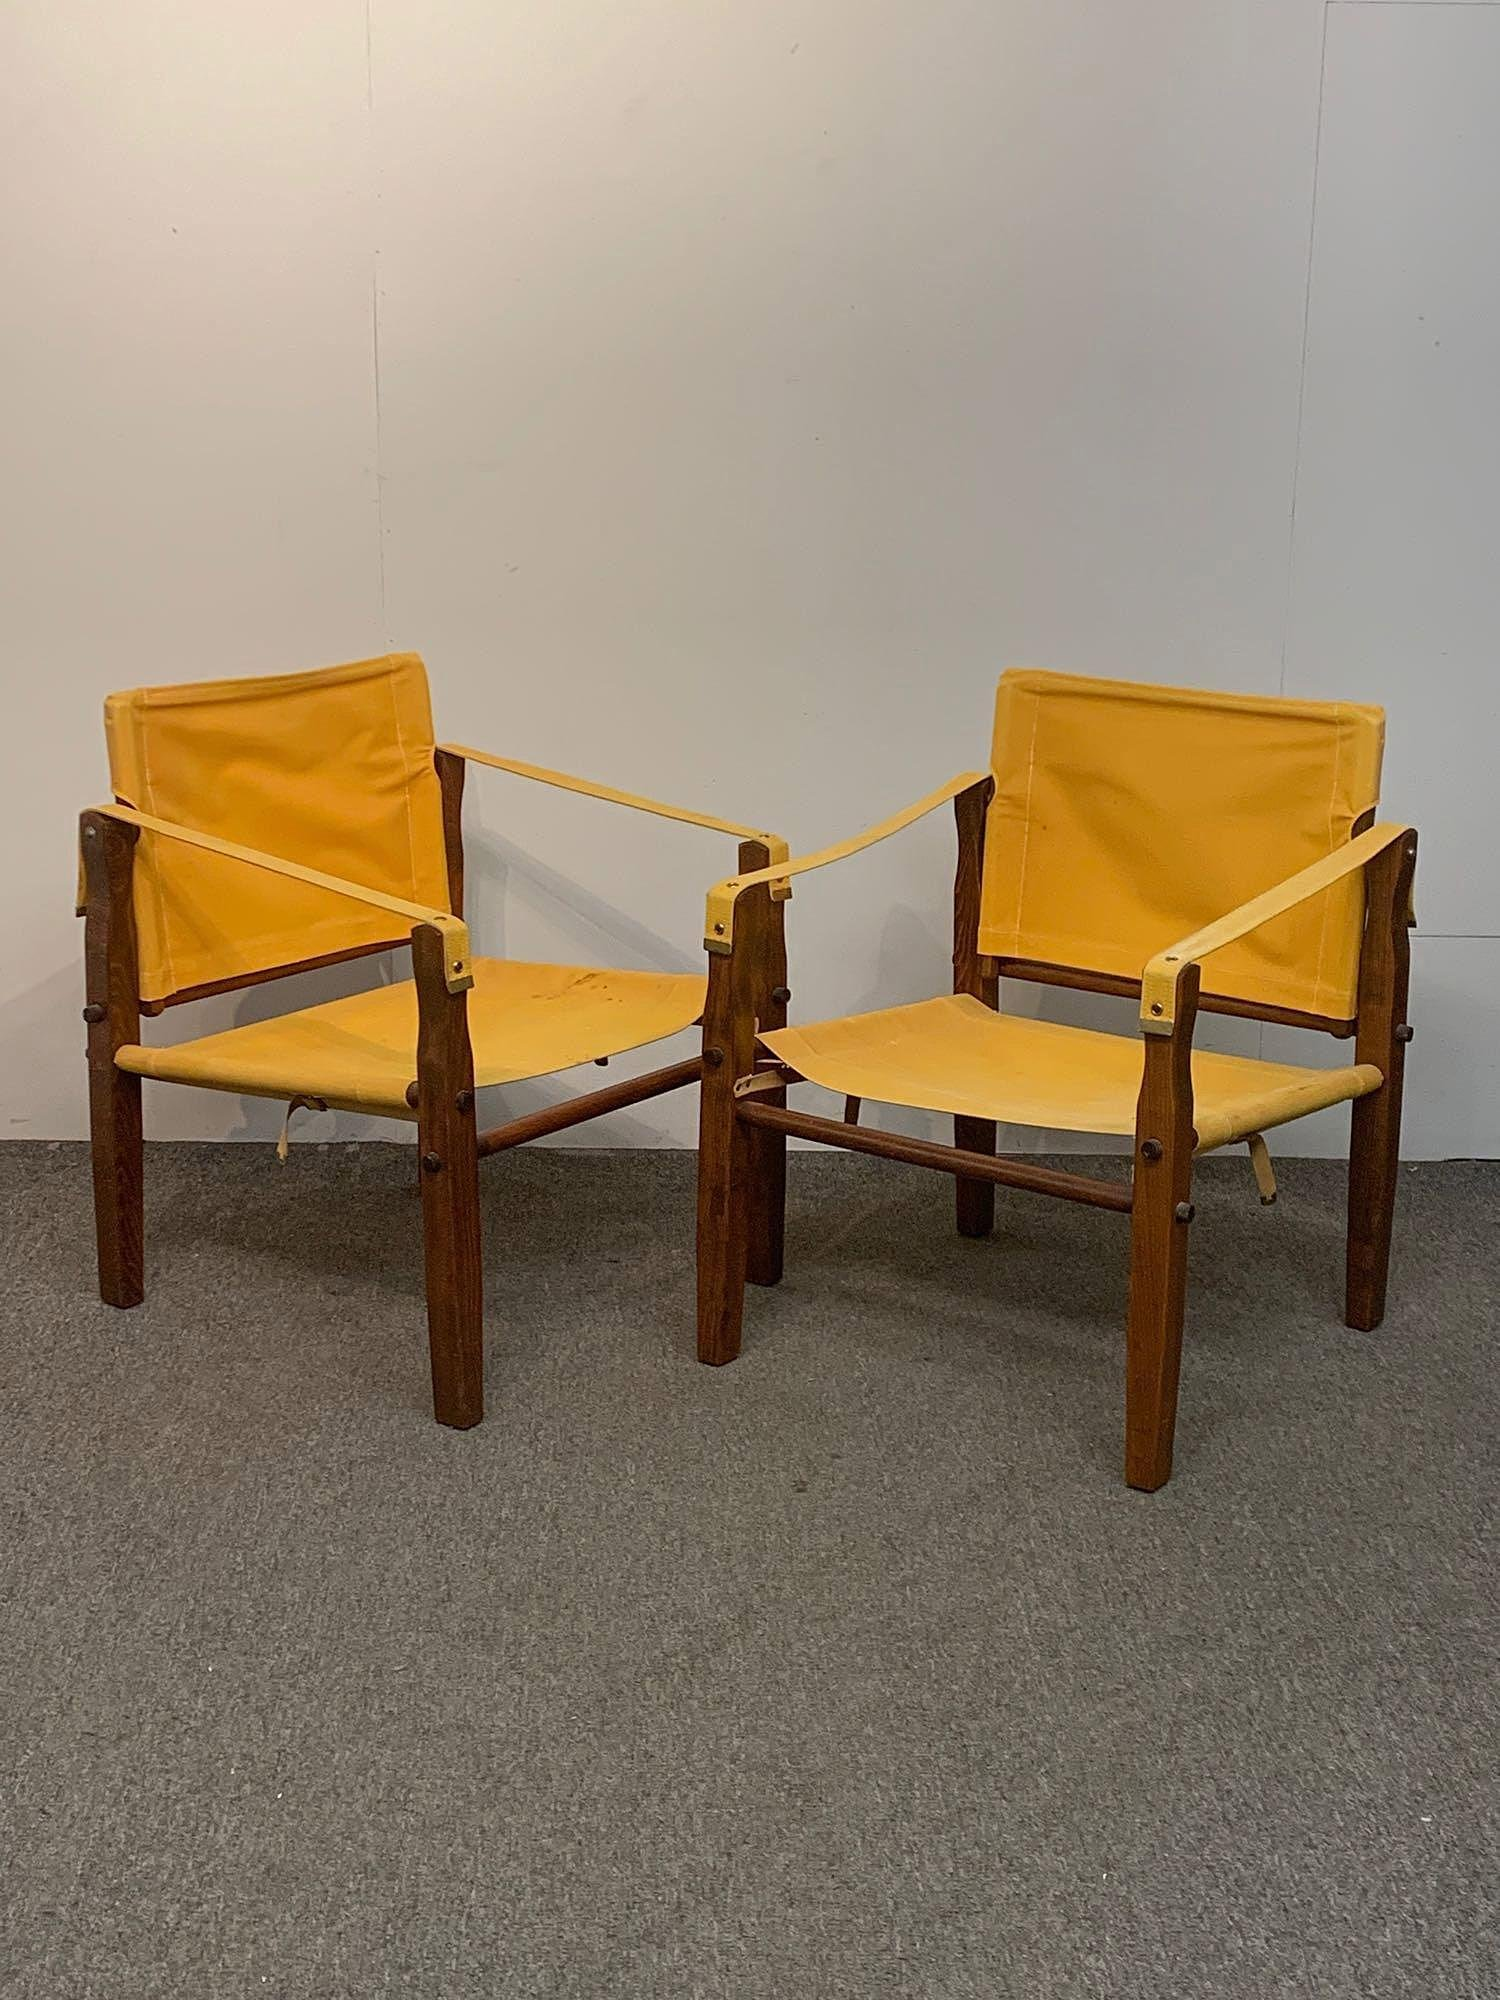 Two Mid-Century Modern Safari Chairs